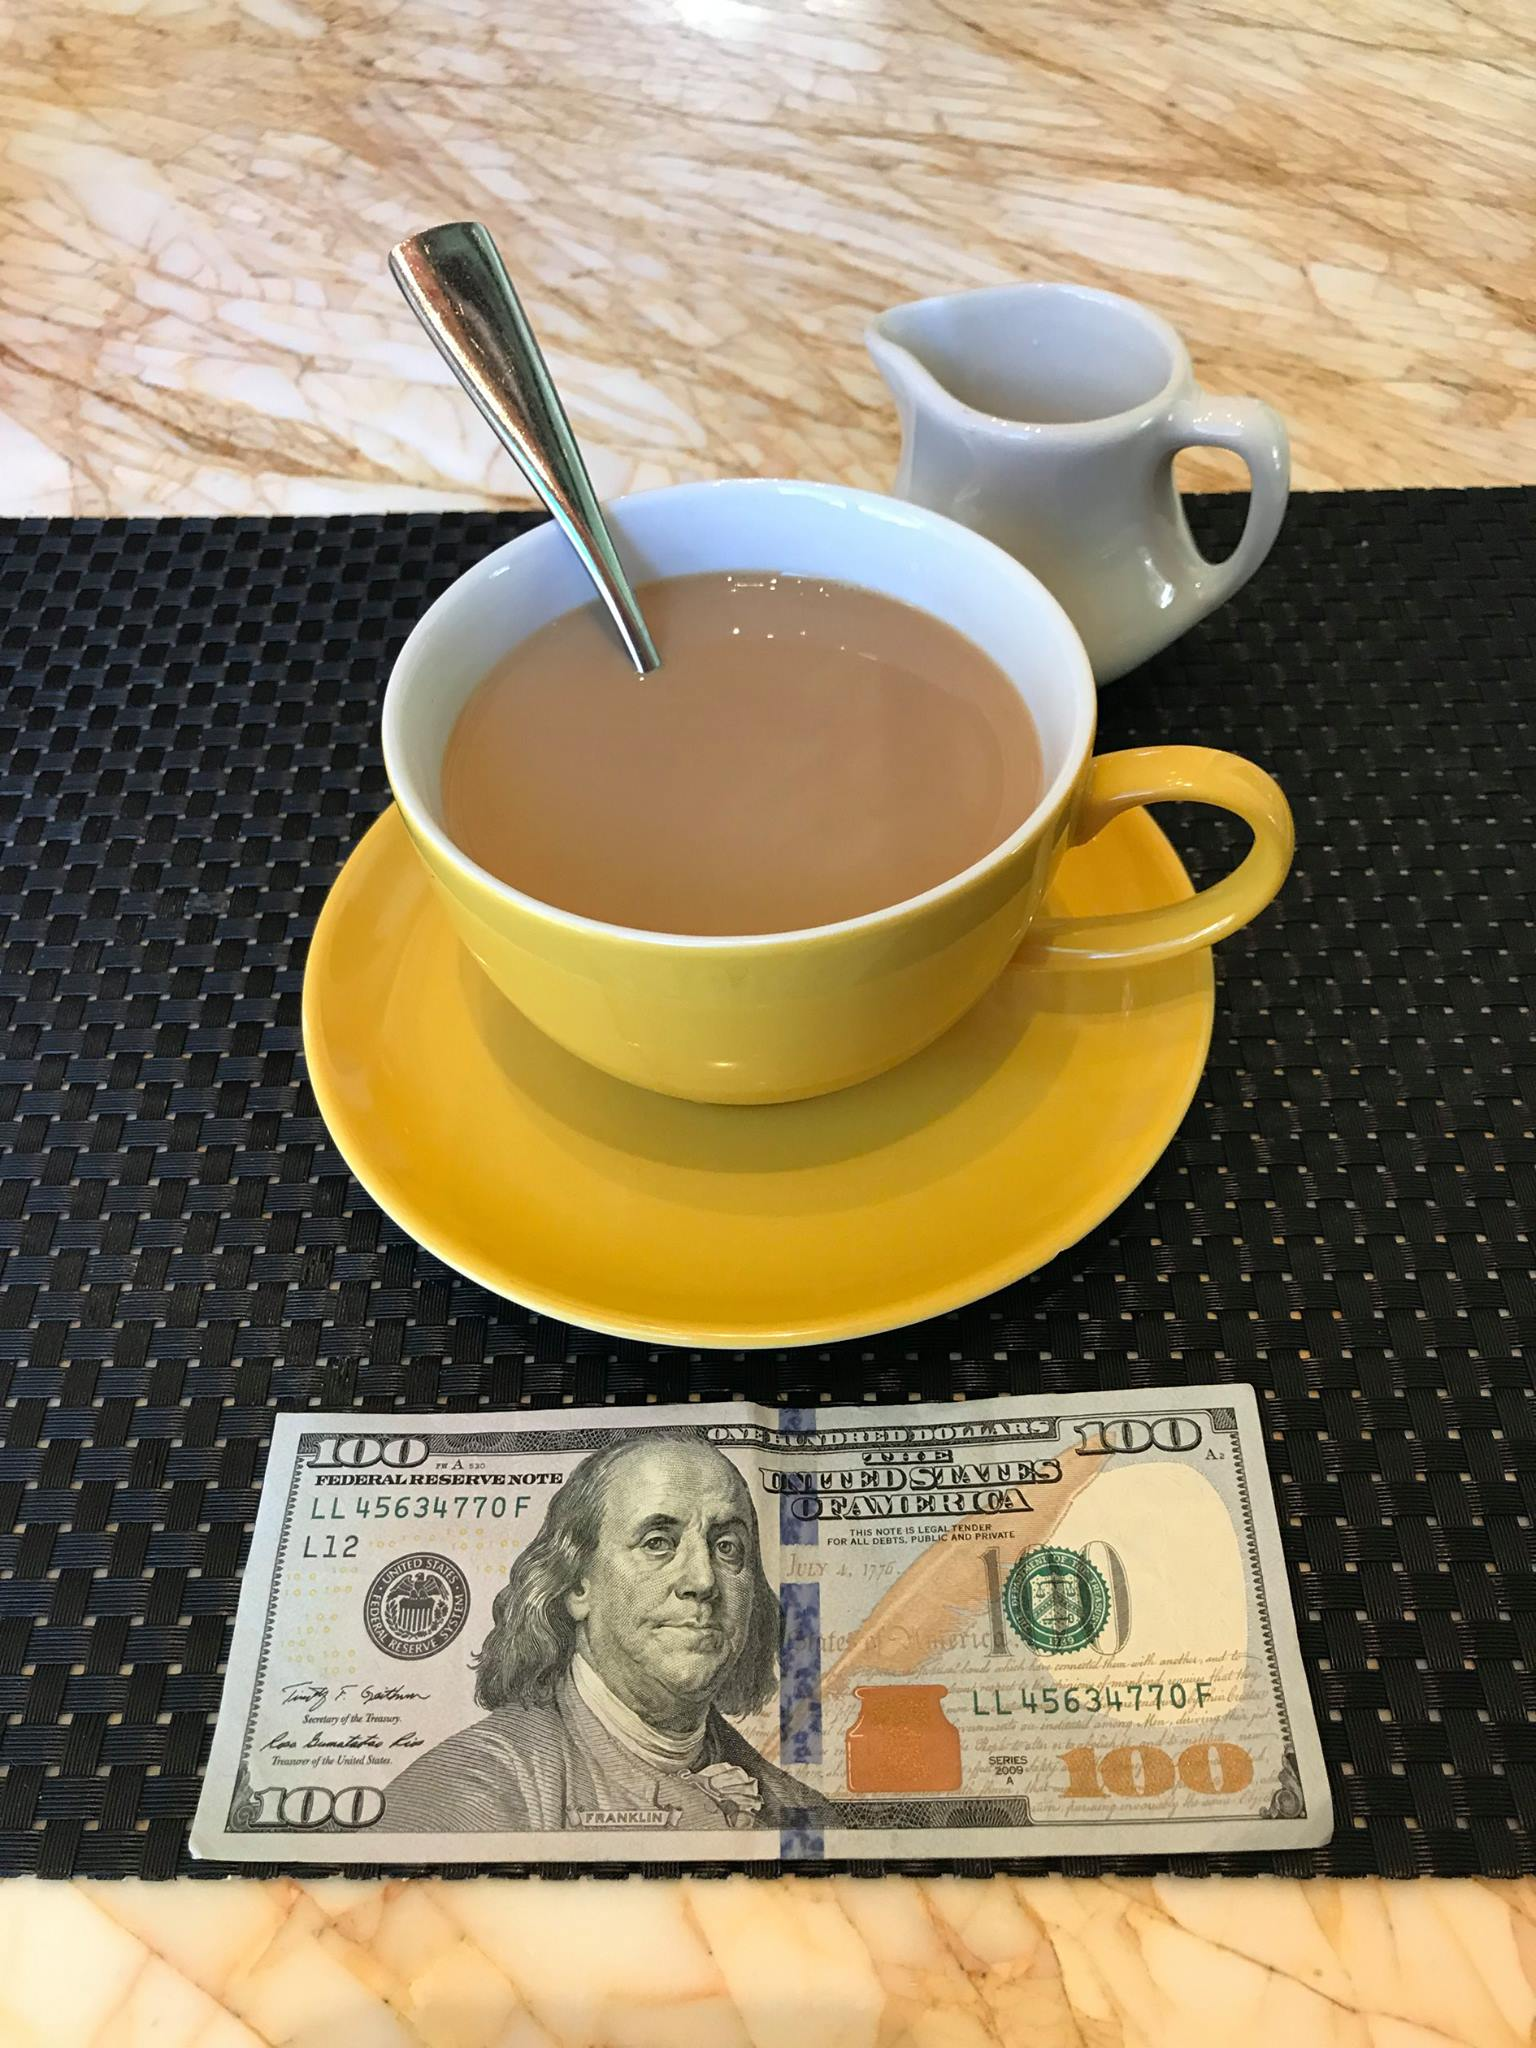 Picture of coffee-filled cup and saucer (yellow) with $100 bill facing up